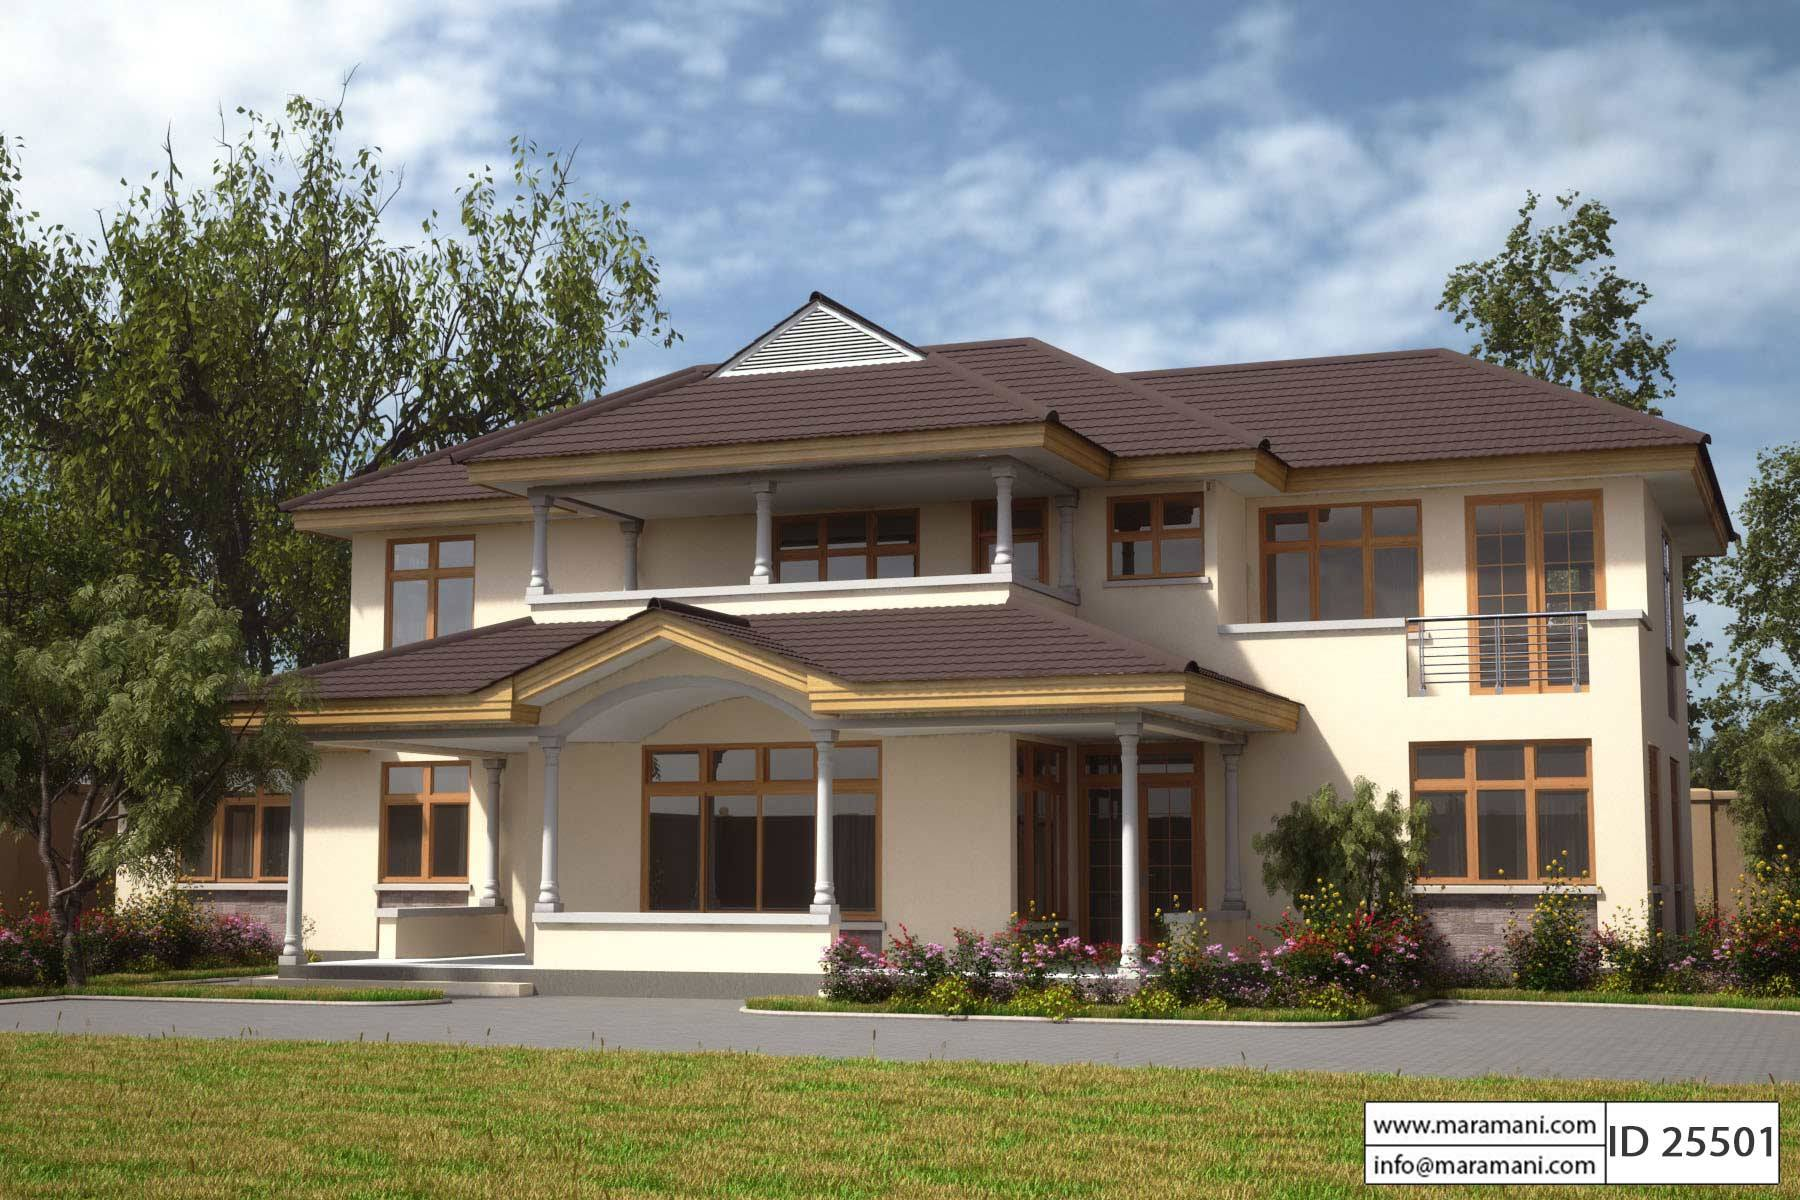 5 bedroom house plan with bonus room id 25501 plans by for 5 bedroom modern farmhouse plans